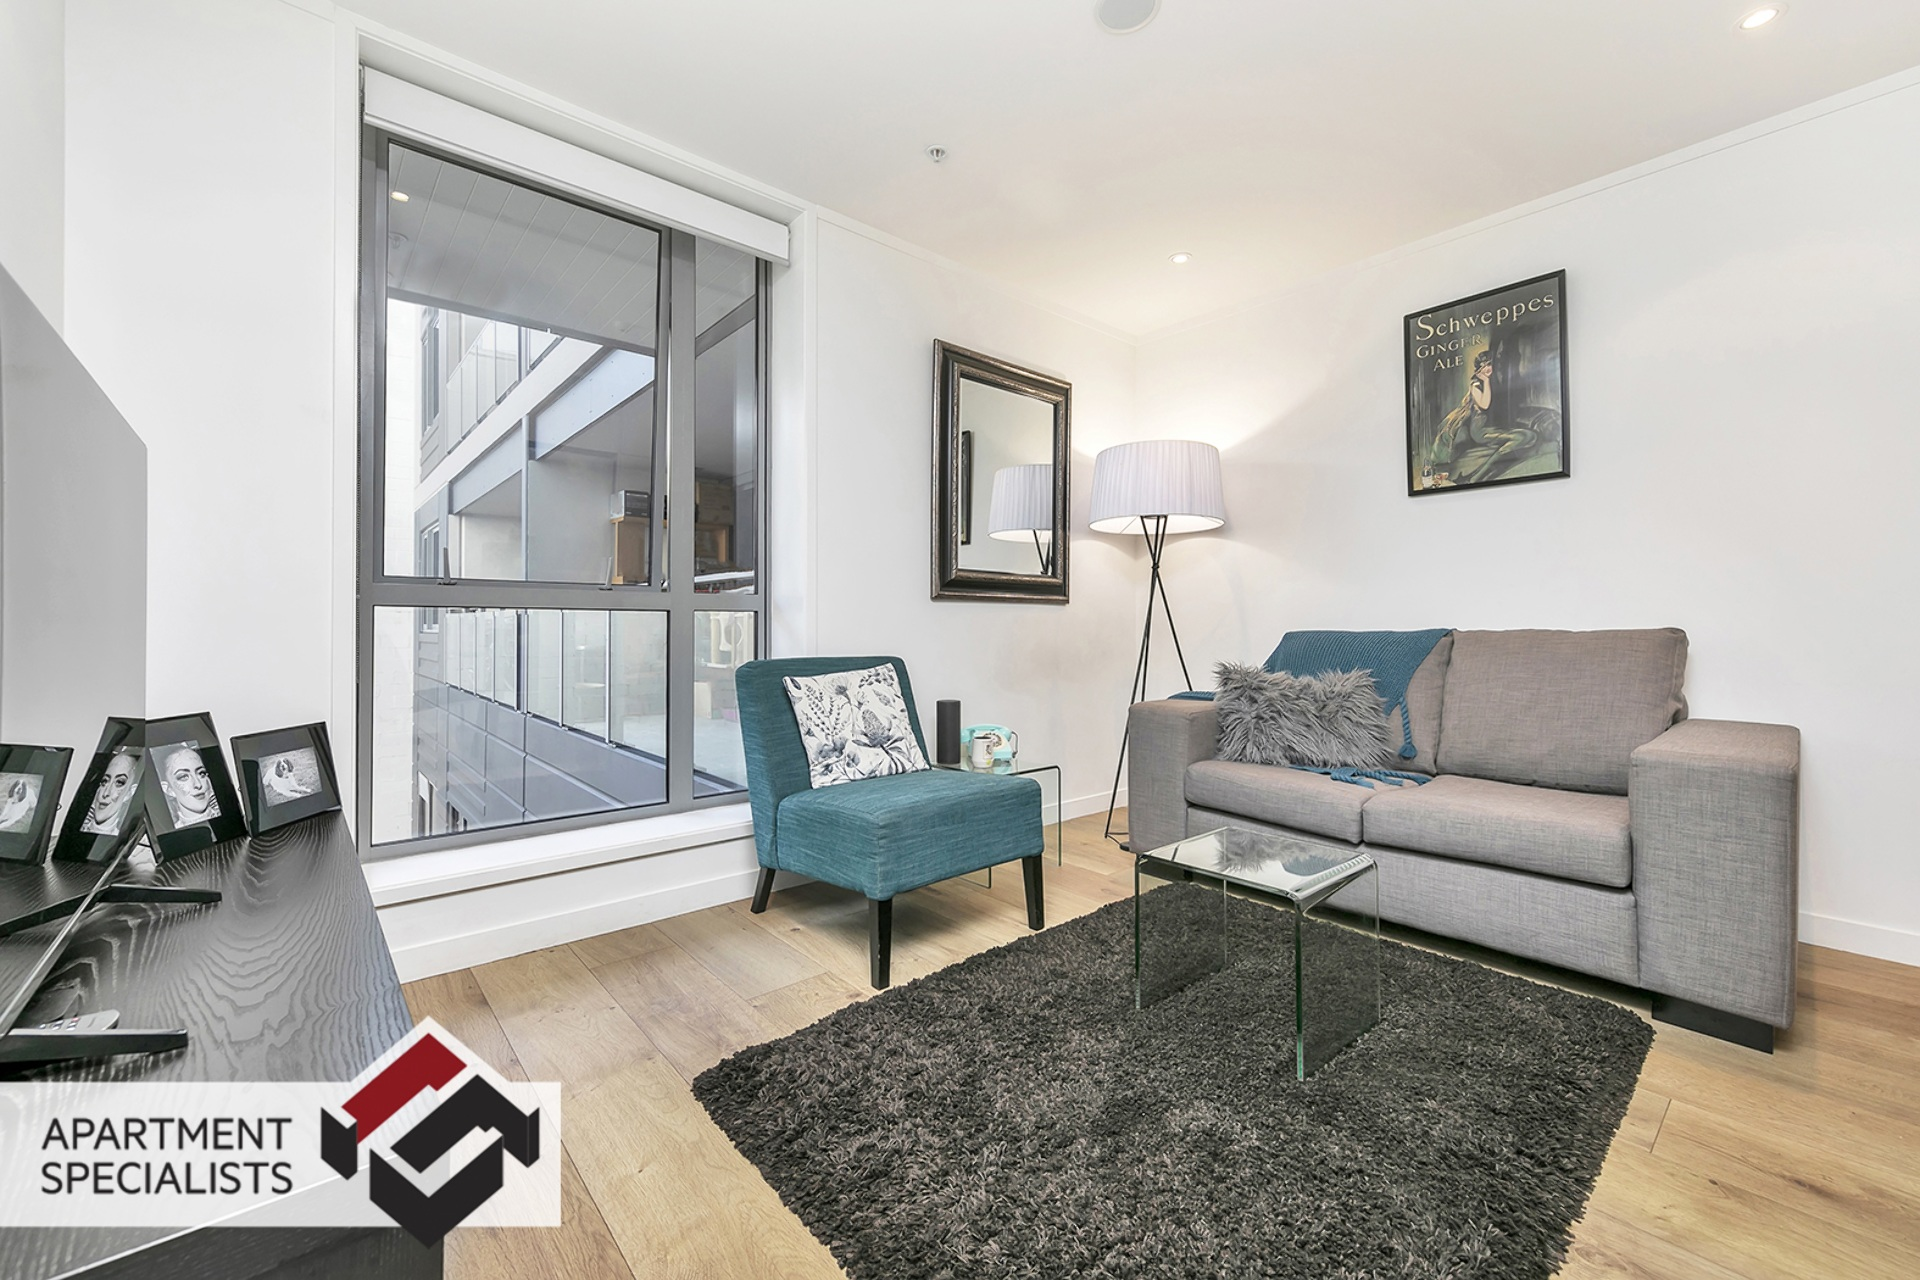 8 | 27 Union Street, City Centre | Apartment Specialists